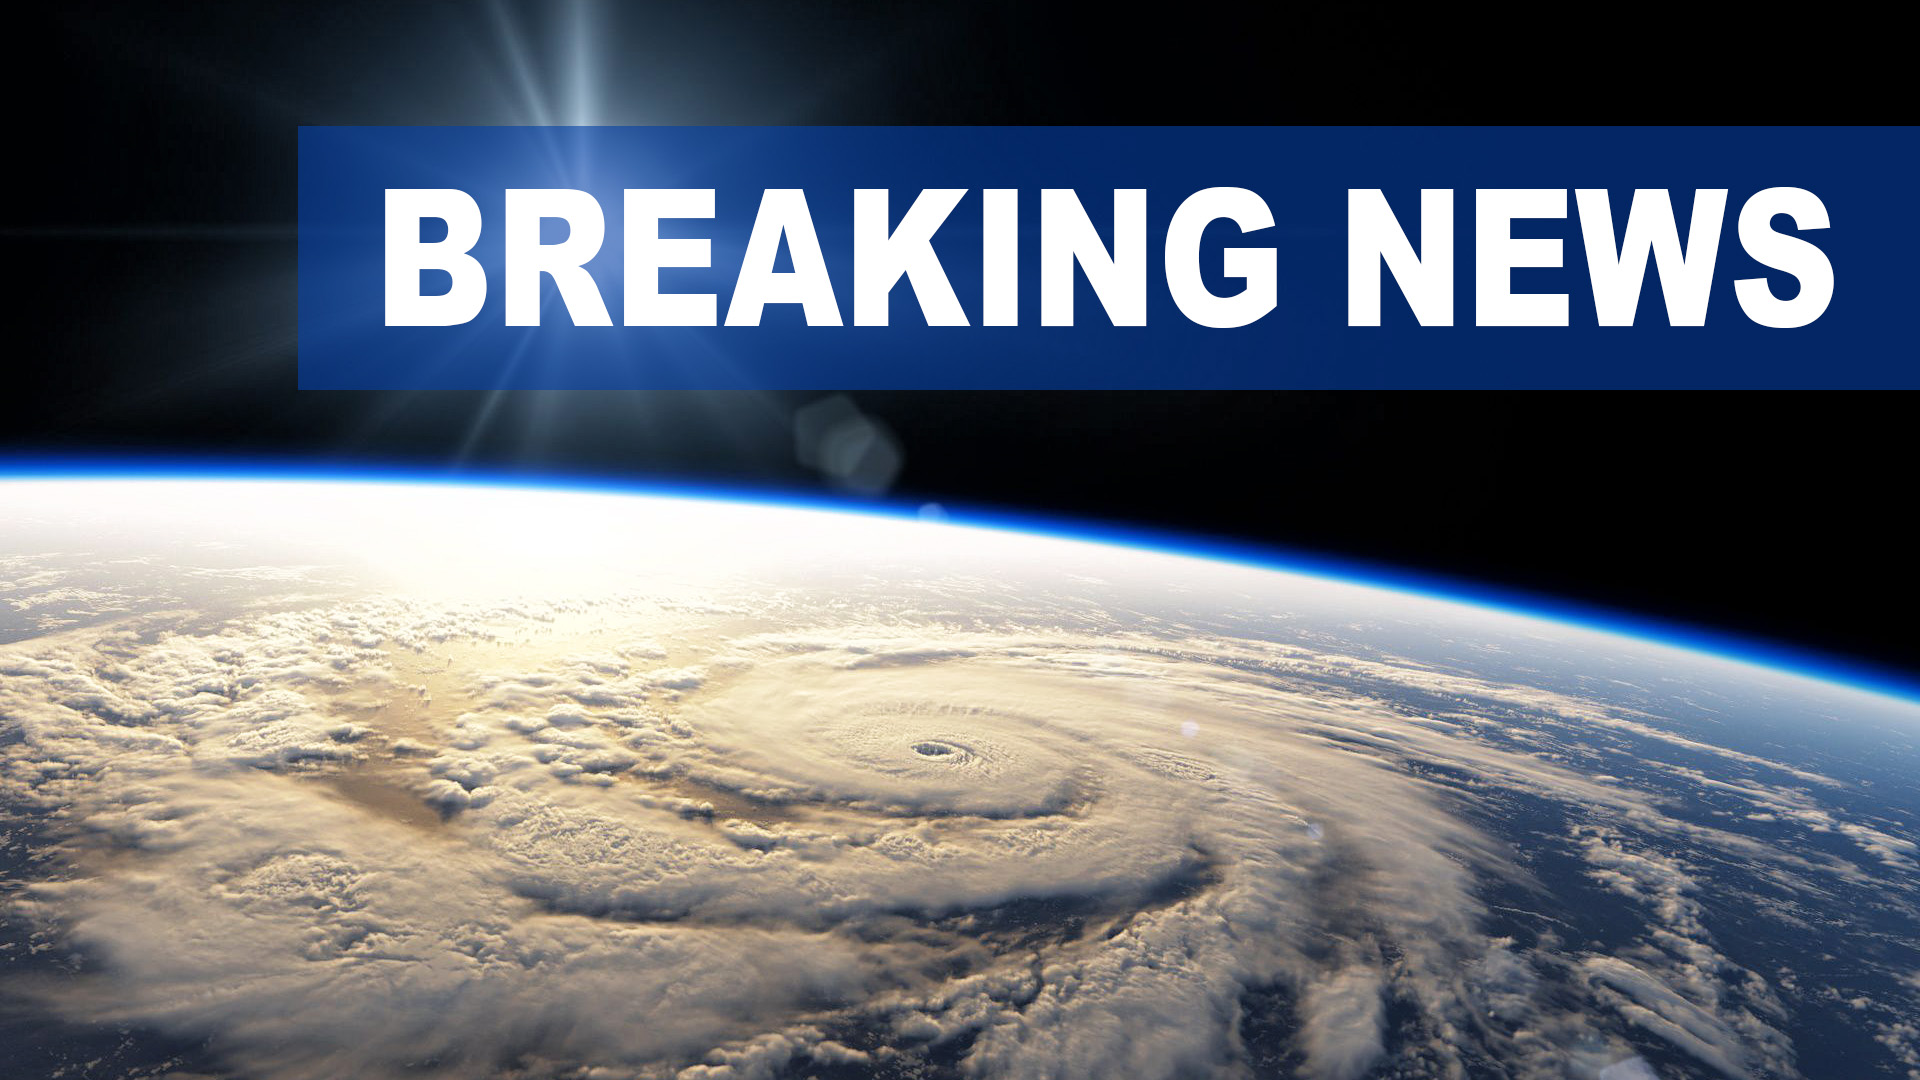 We're bombarded with Breaking News on a daily basis. Image based on NASA footage, composed by NR.